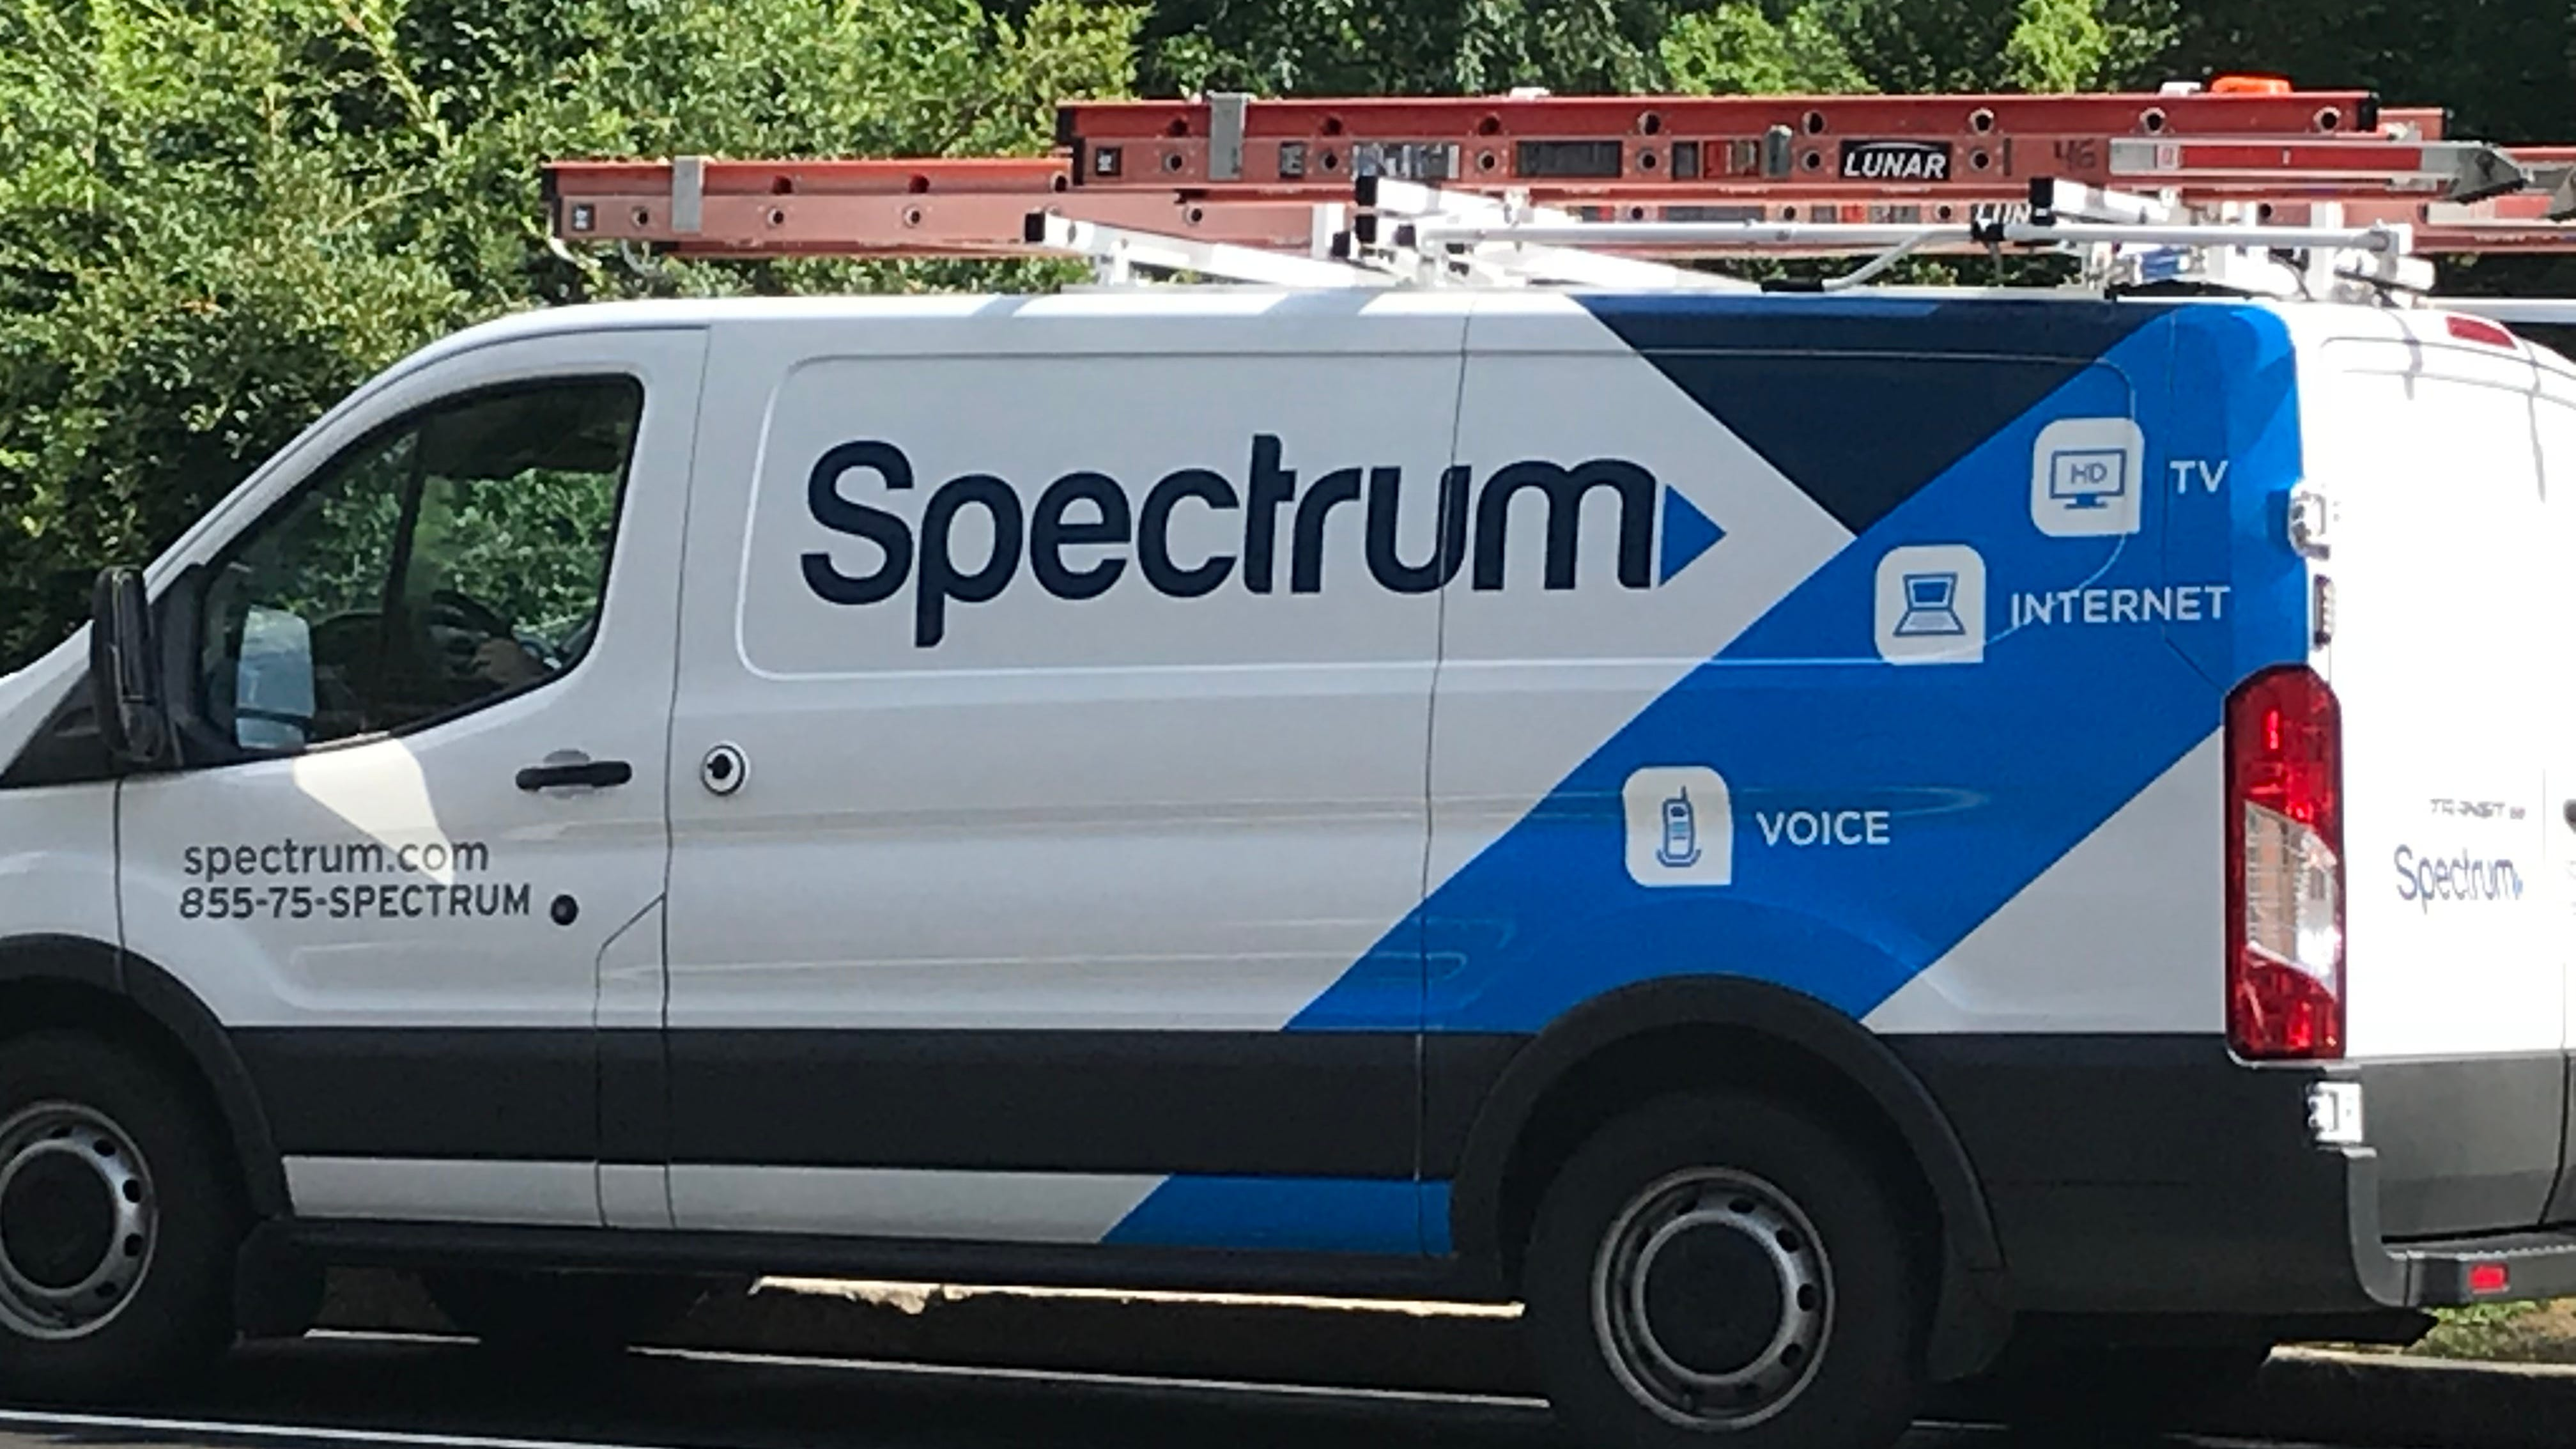 Spectrum to increase cable, internet costs next month